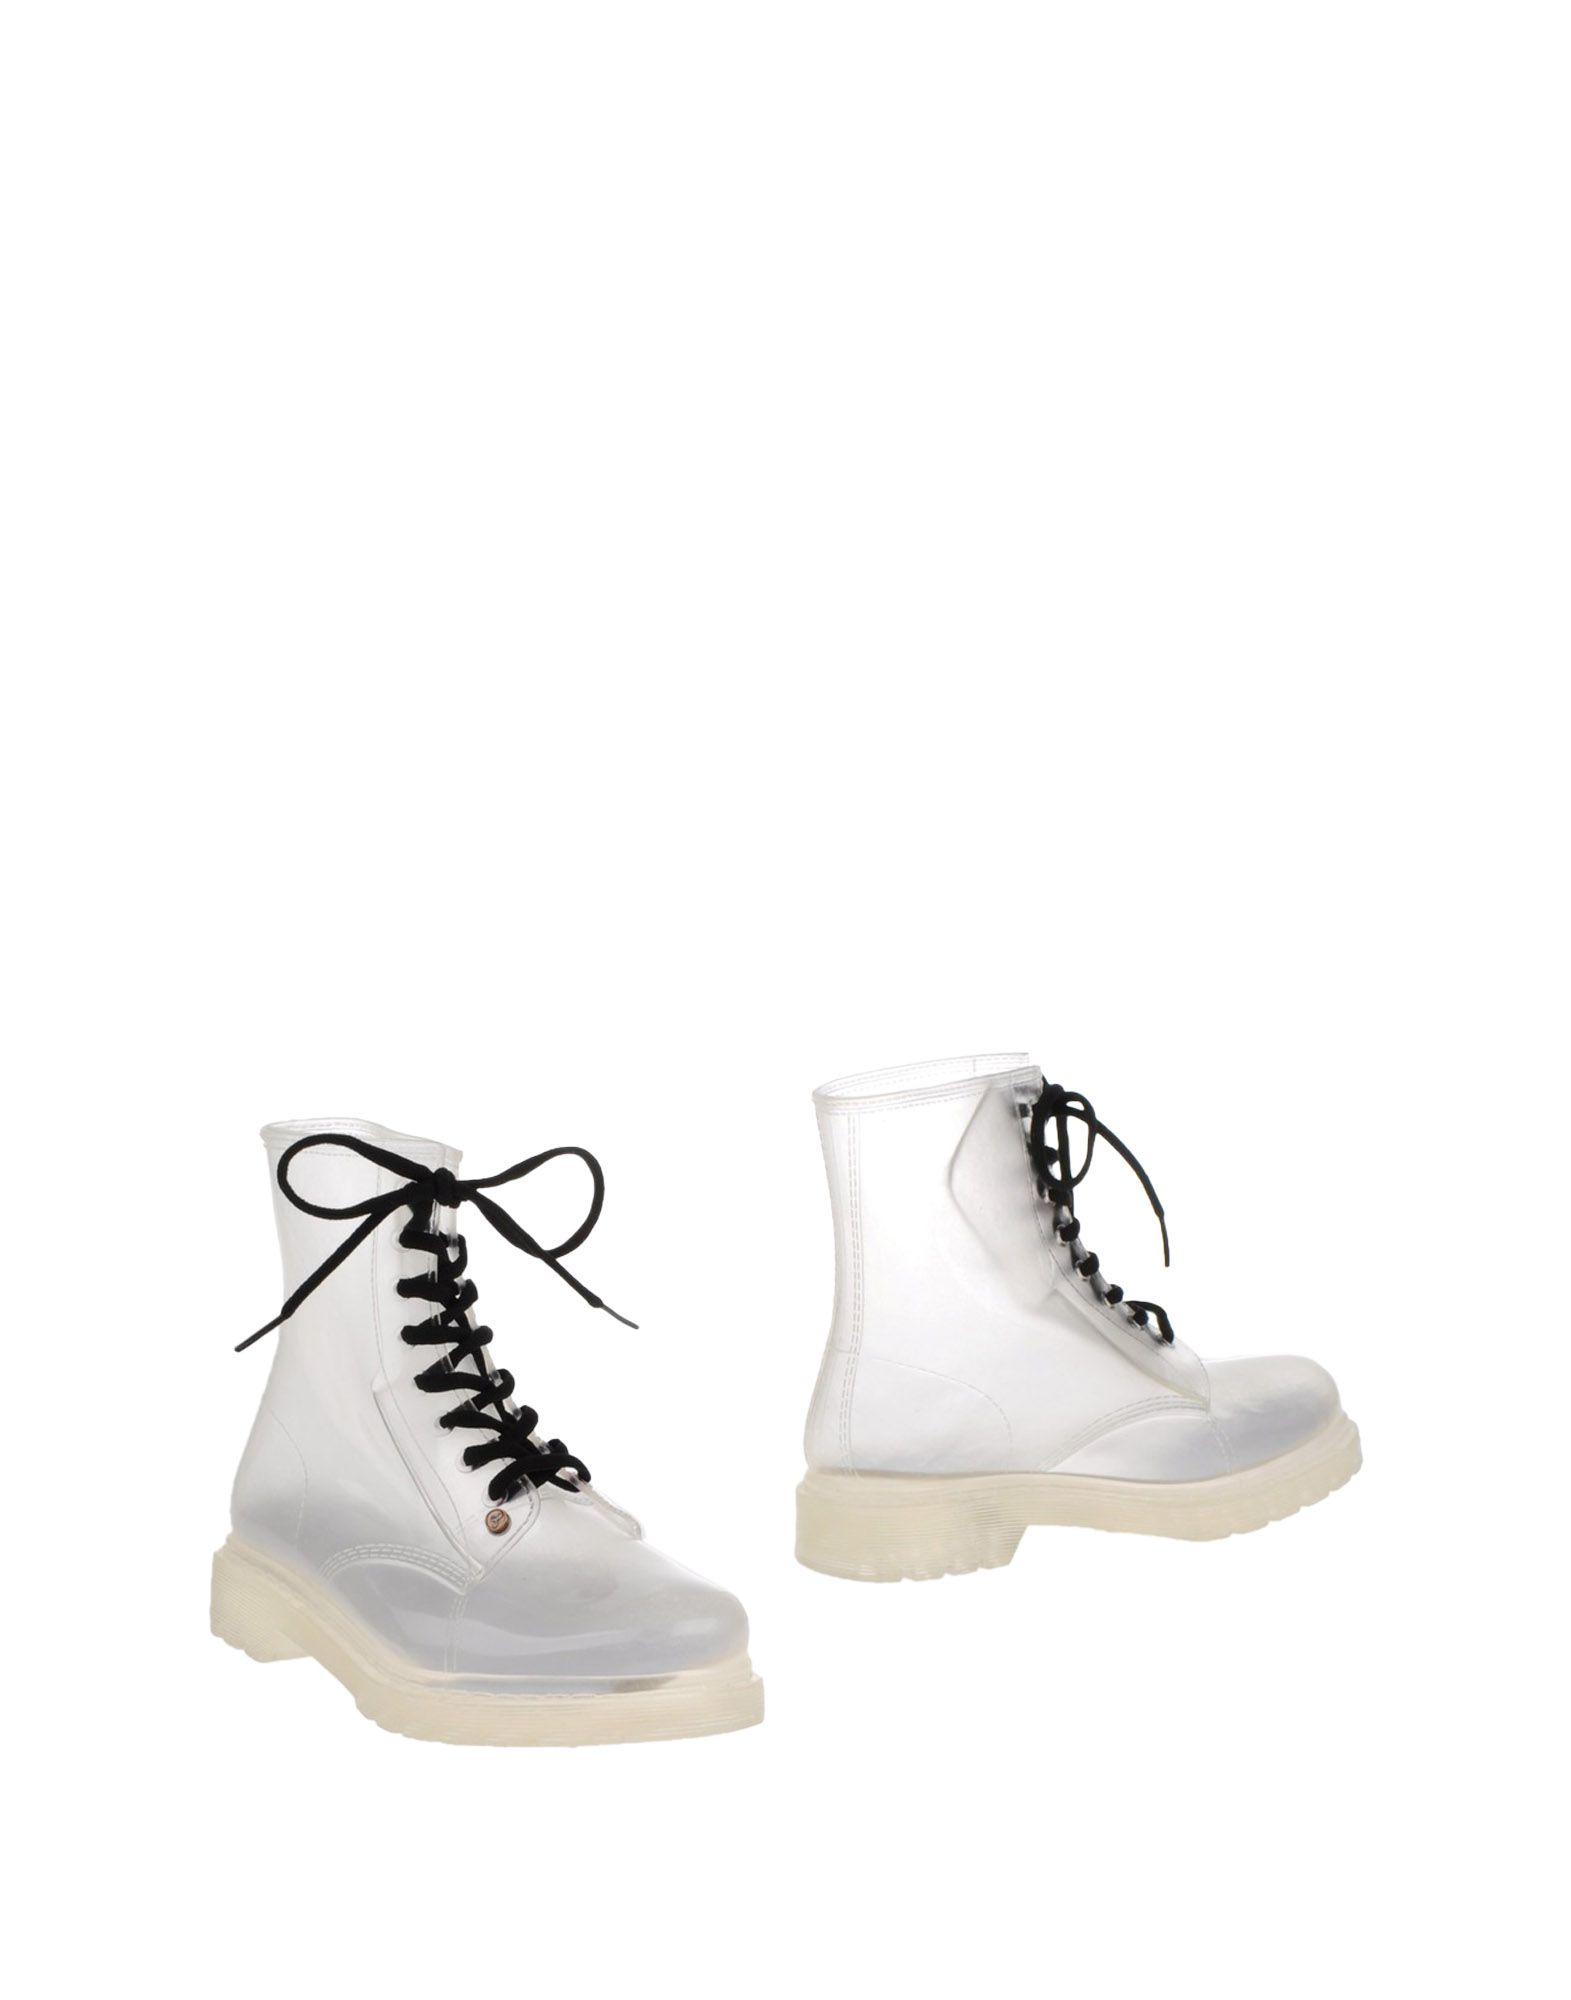 G SIX WORKSHOP Ankle Boots in Transparent